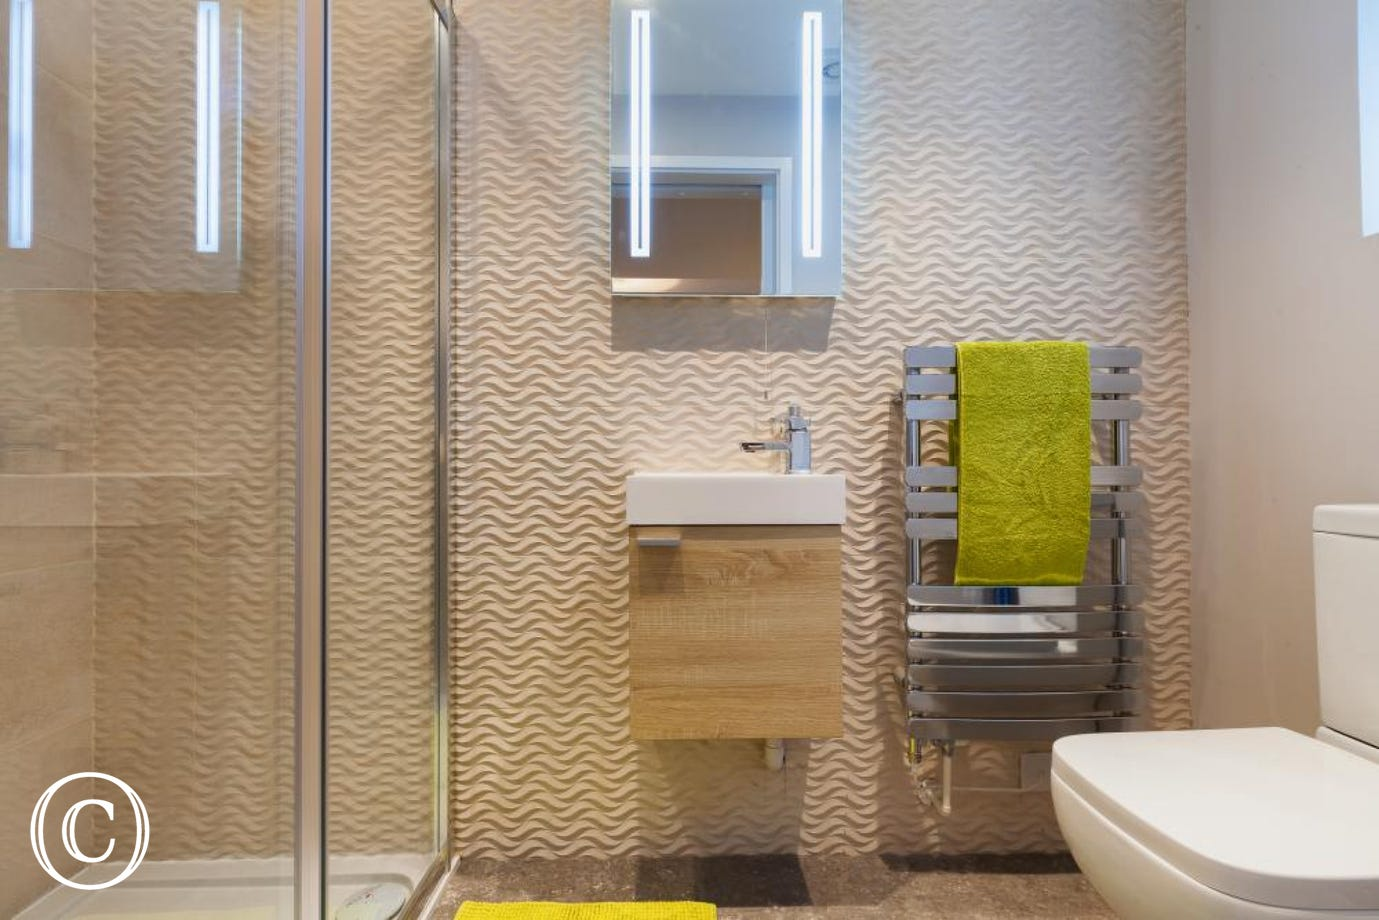 En-suite shower room to Bedroom 3